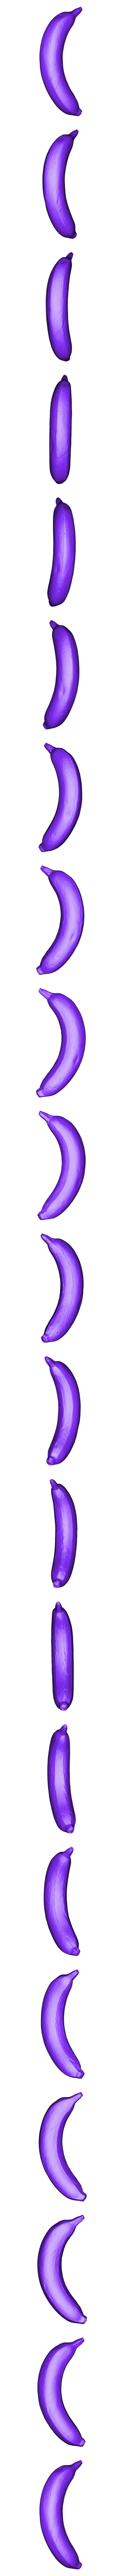 Banana.stl Download free STL file High Resolution Scan of a Banana. • 3D printing model, Anthrobones